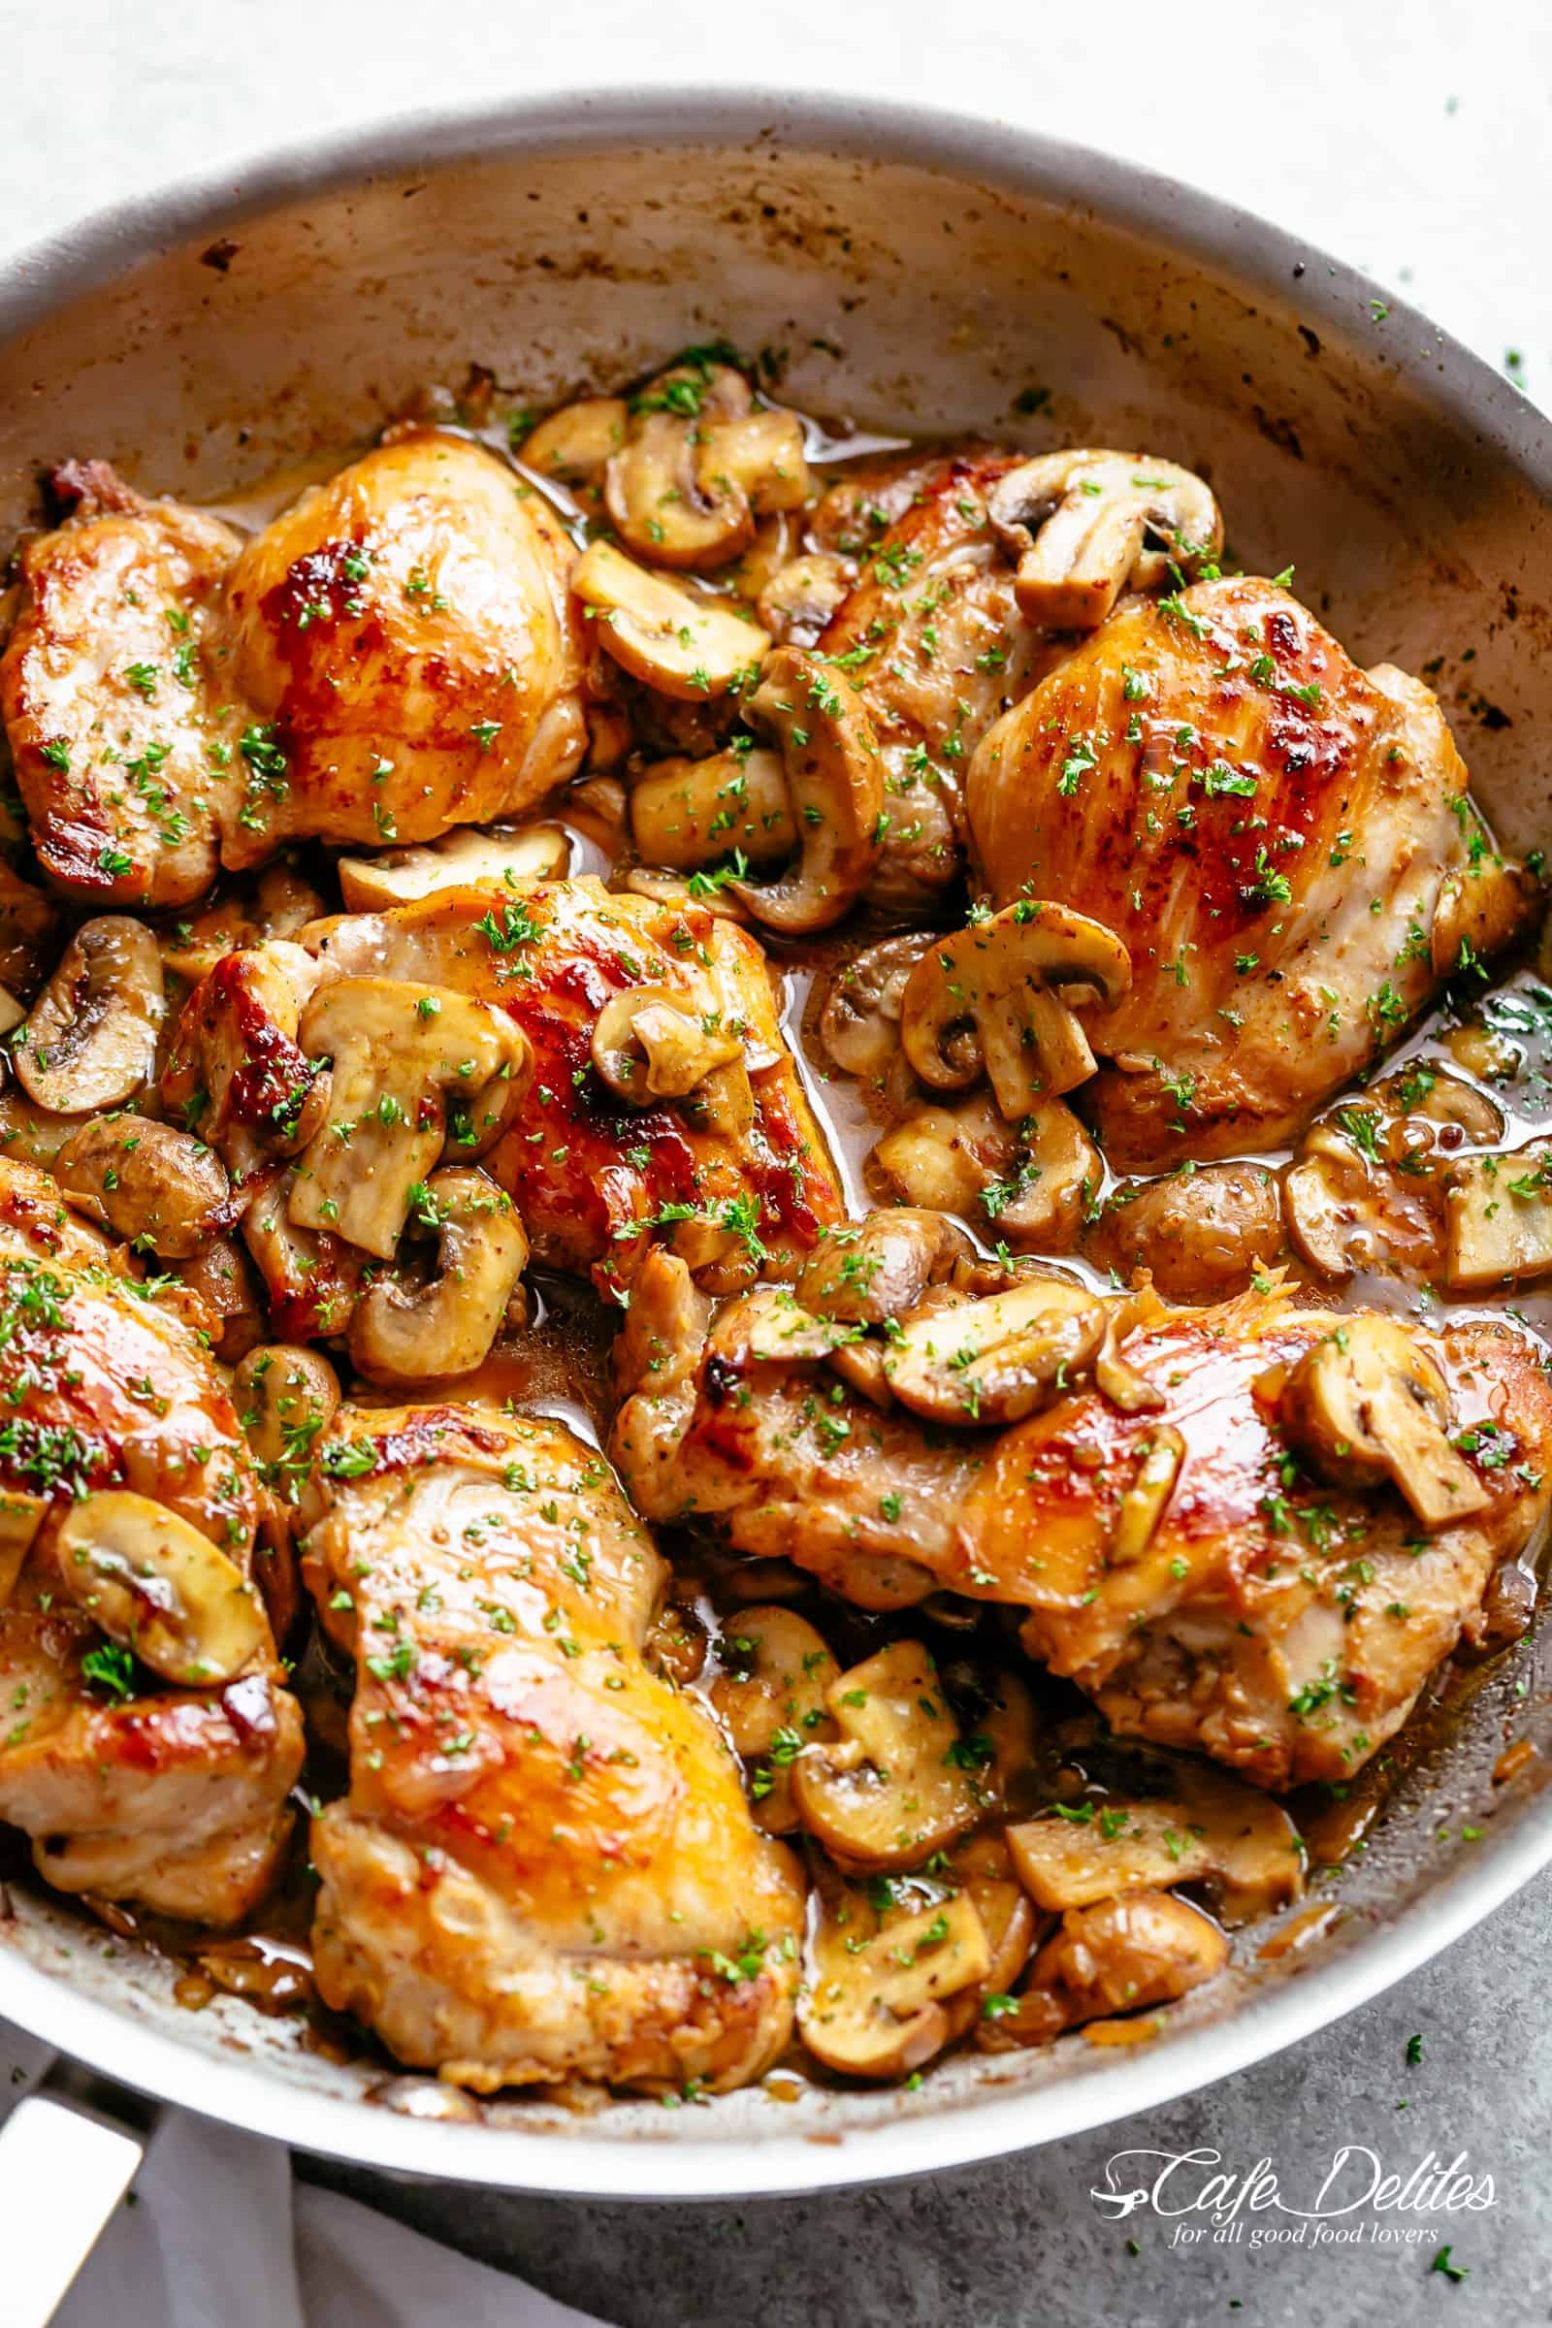 Garlic Mushroom Chicken Thighs - Cafe Delites - Recipes With Chicken Breast For One